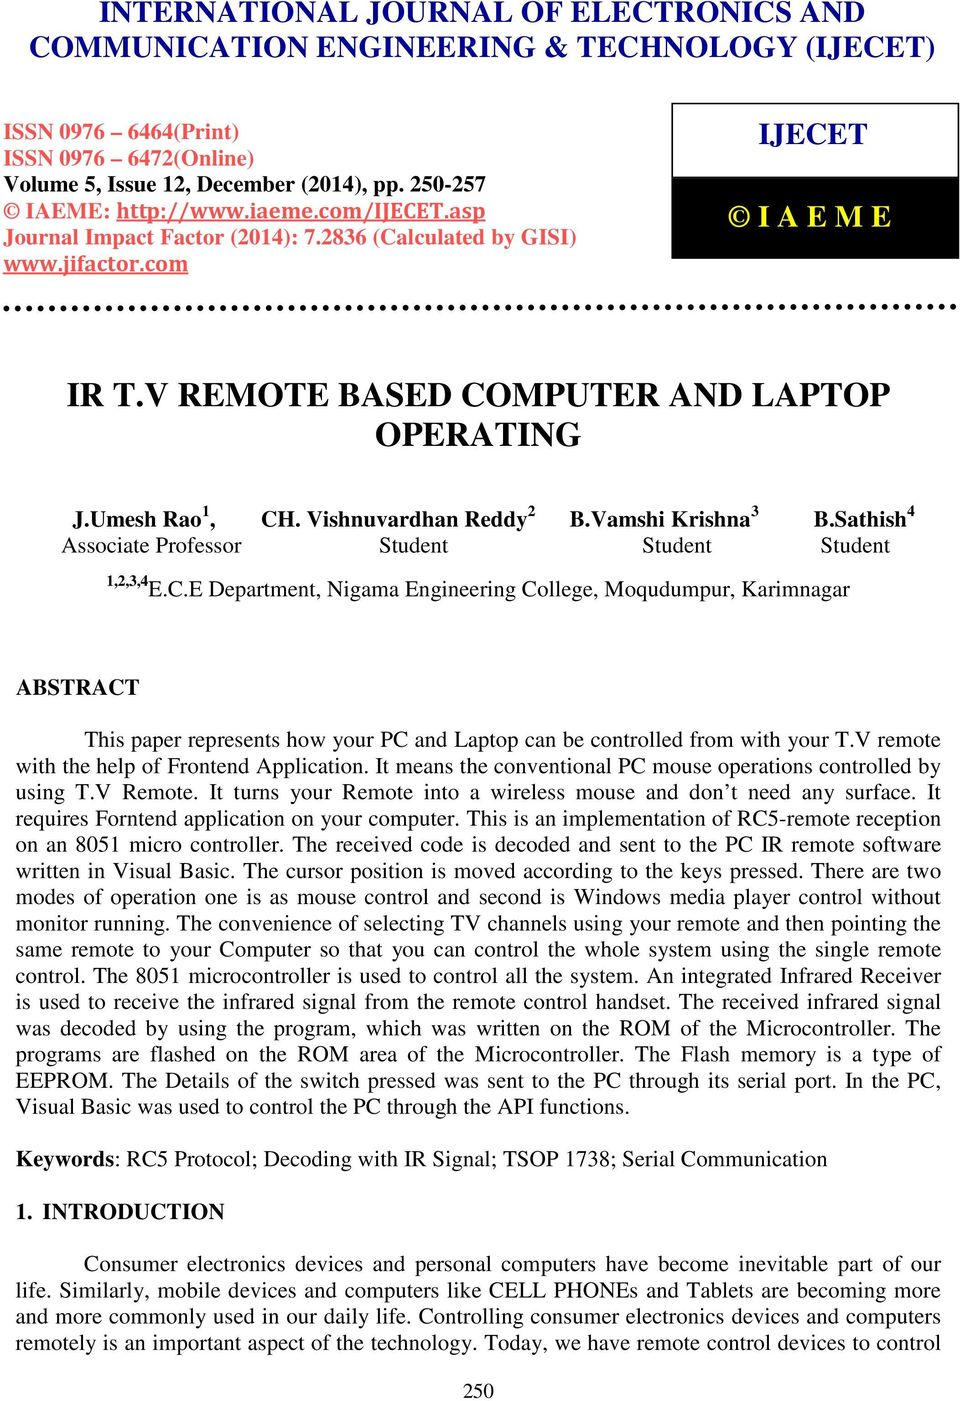 IR T V REMOTE BASED COMPUTER AND LAPTOP OPERATING - PDF